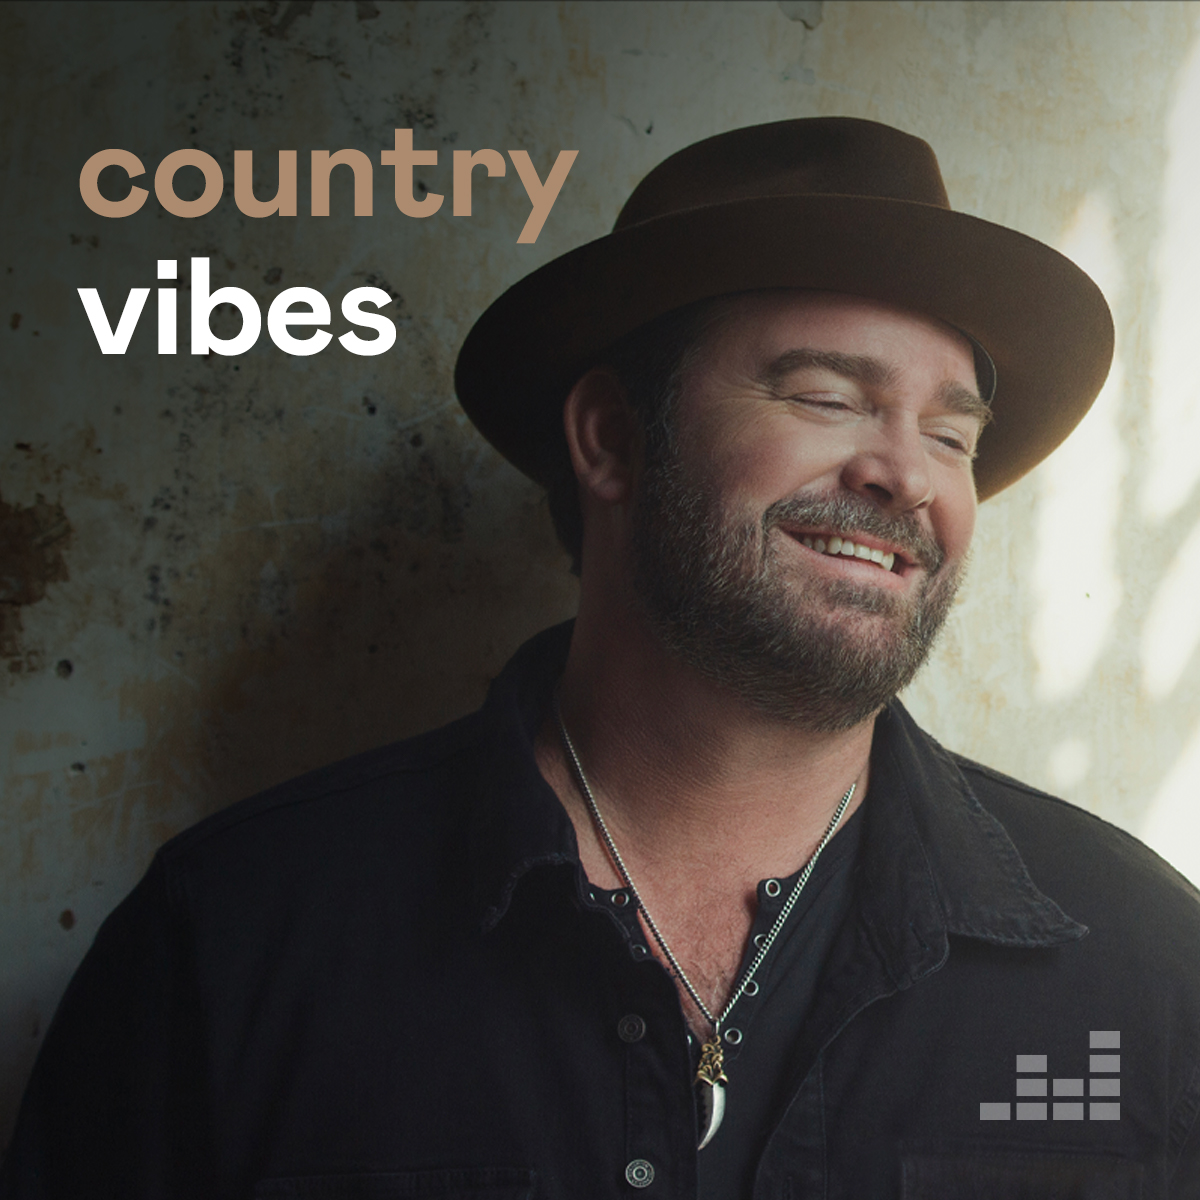 Thanks to @Deezer for making me the cover of their #countryVibes playlist. Check it out: https://t.co/STz3F9LCS1 https://t.co/LxXIs02NKL